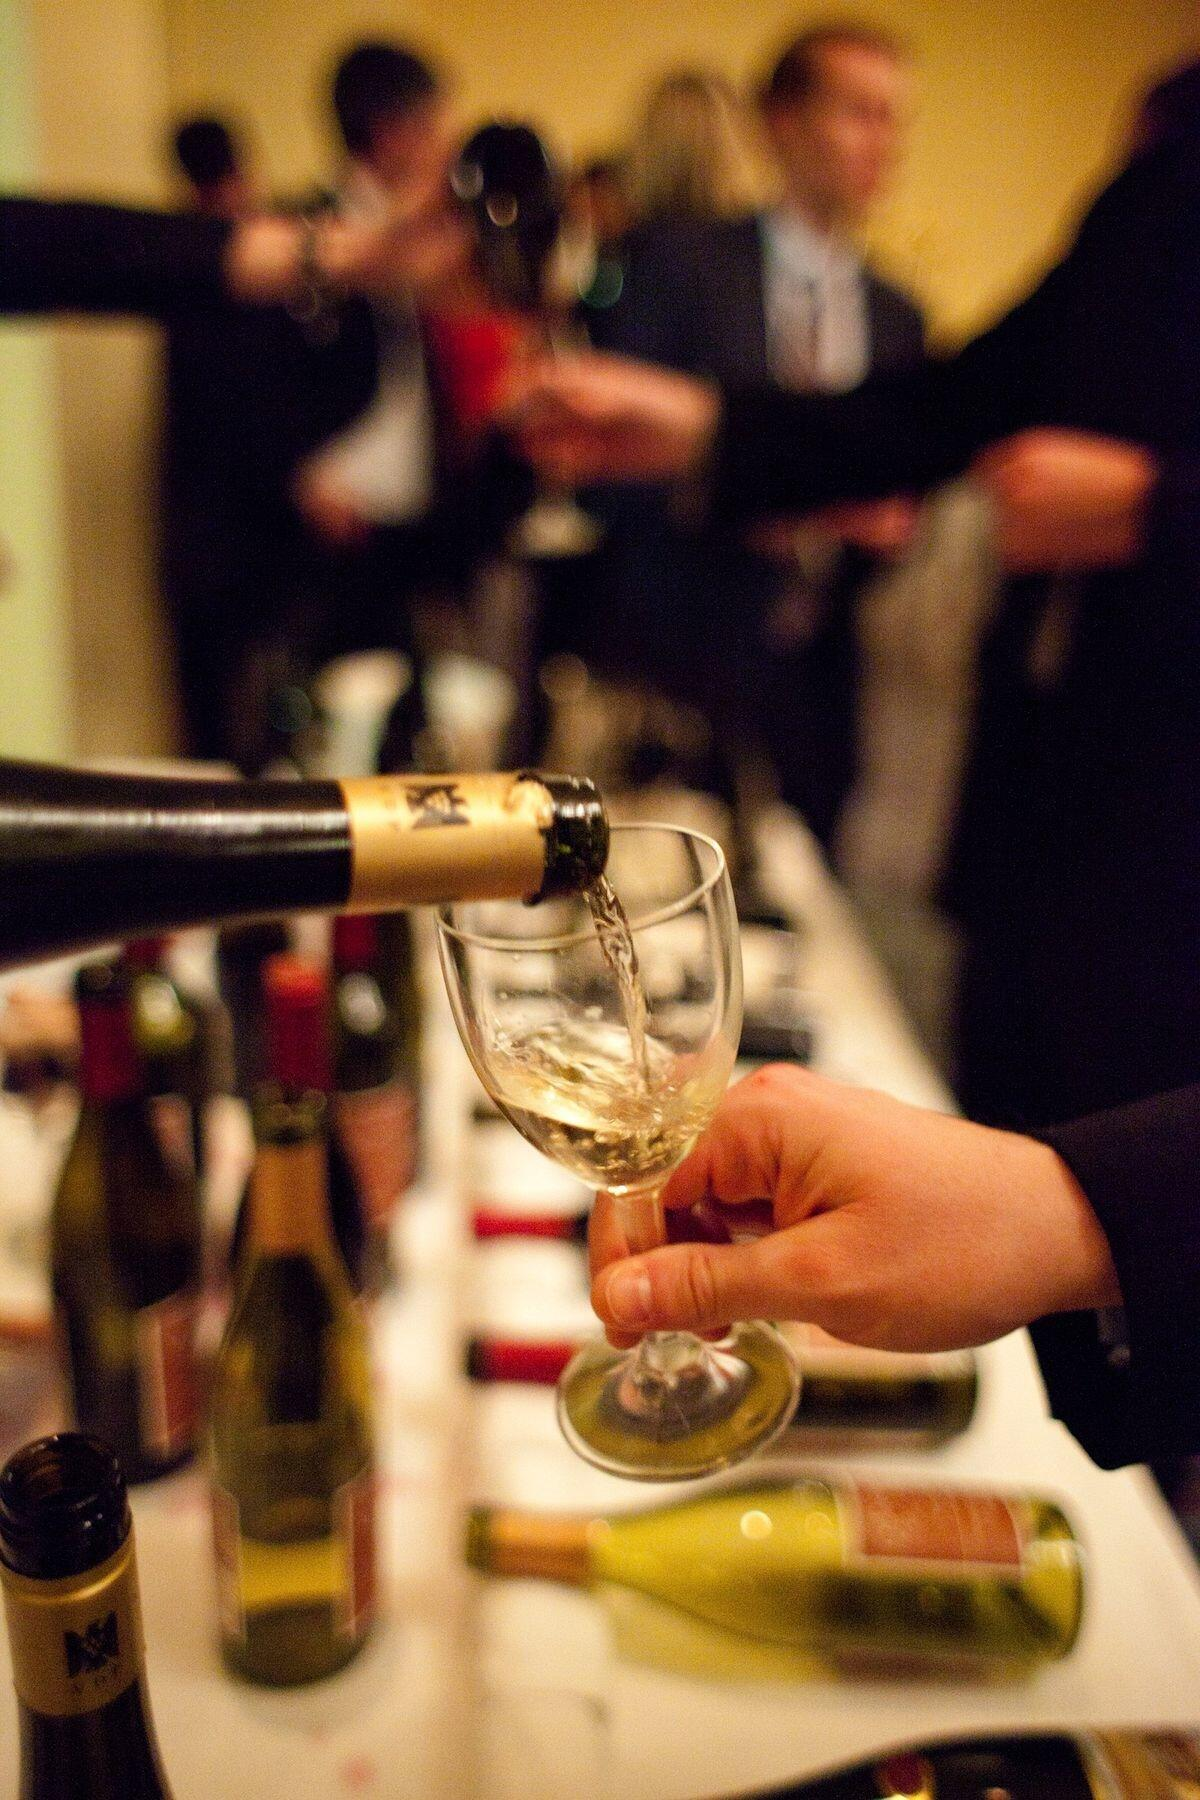 Glasses of wine being poured at an event